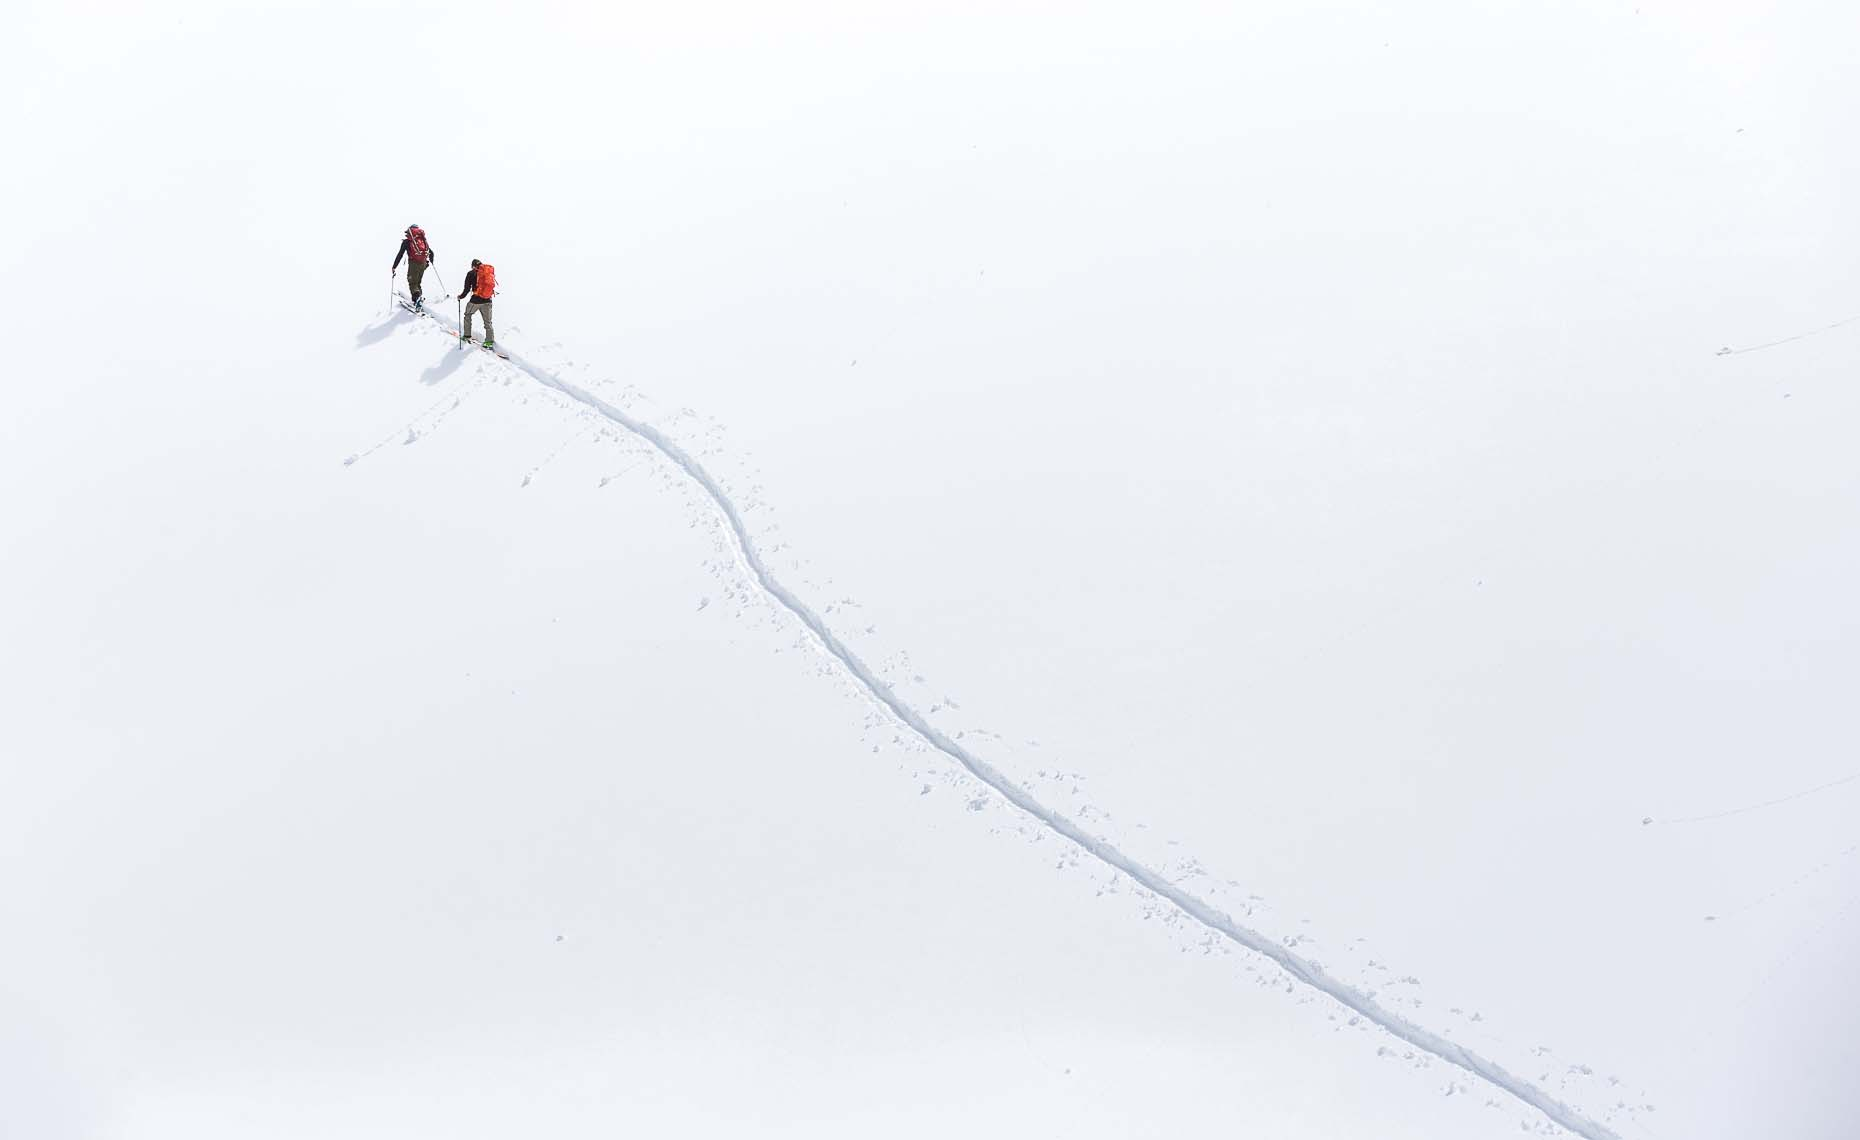 Minimalist ski shot of two skiers hiking up the mountain in Canada.